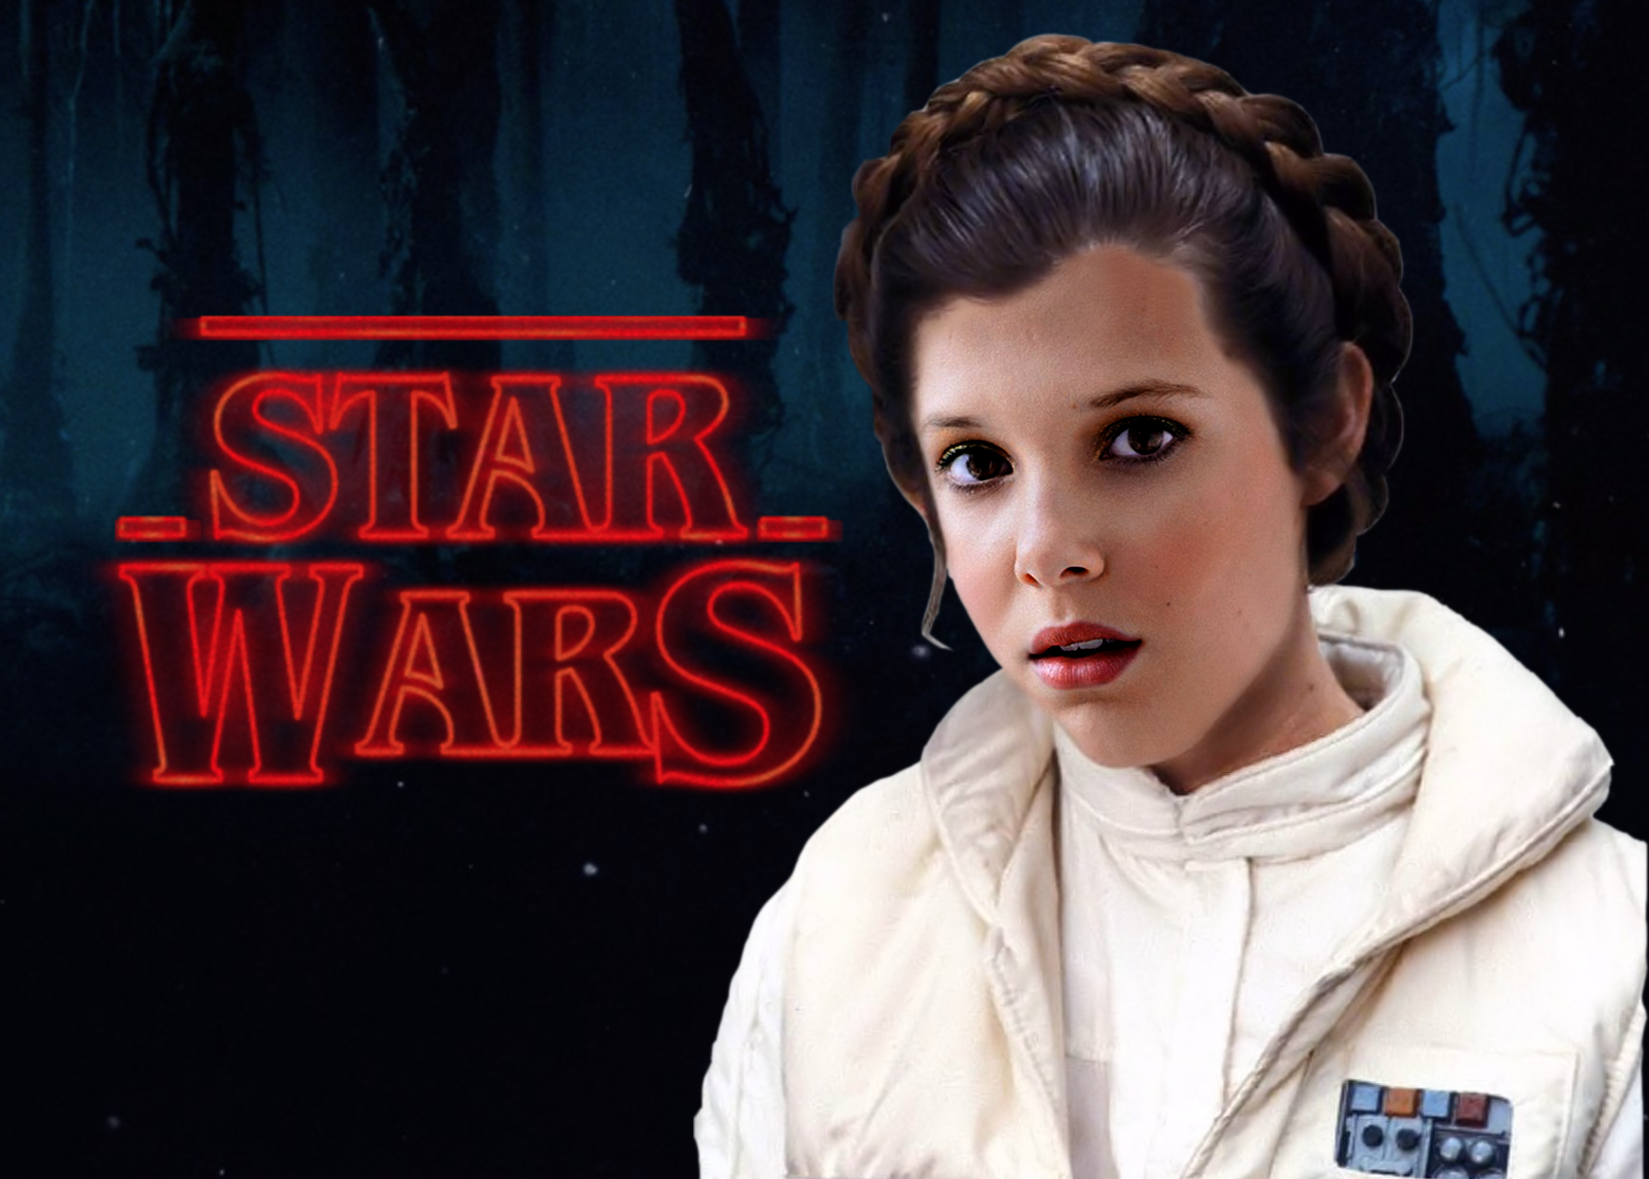 'Stranger Things's' Millie Bobby Brown Wants a Certain 'Star Wars' Role